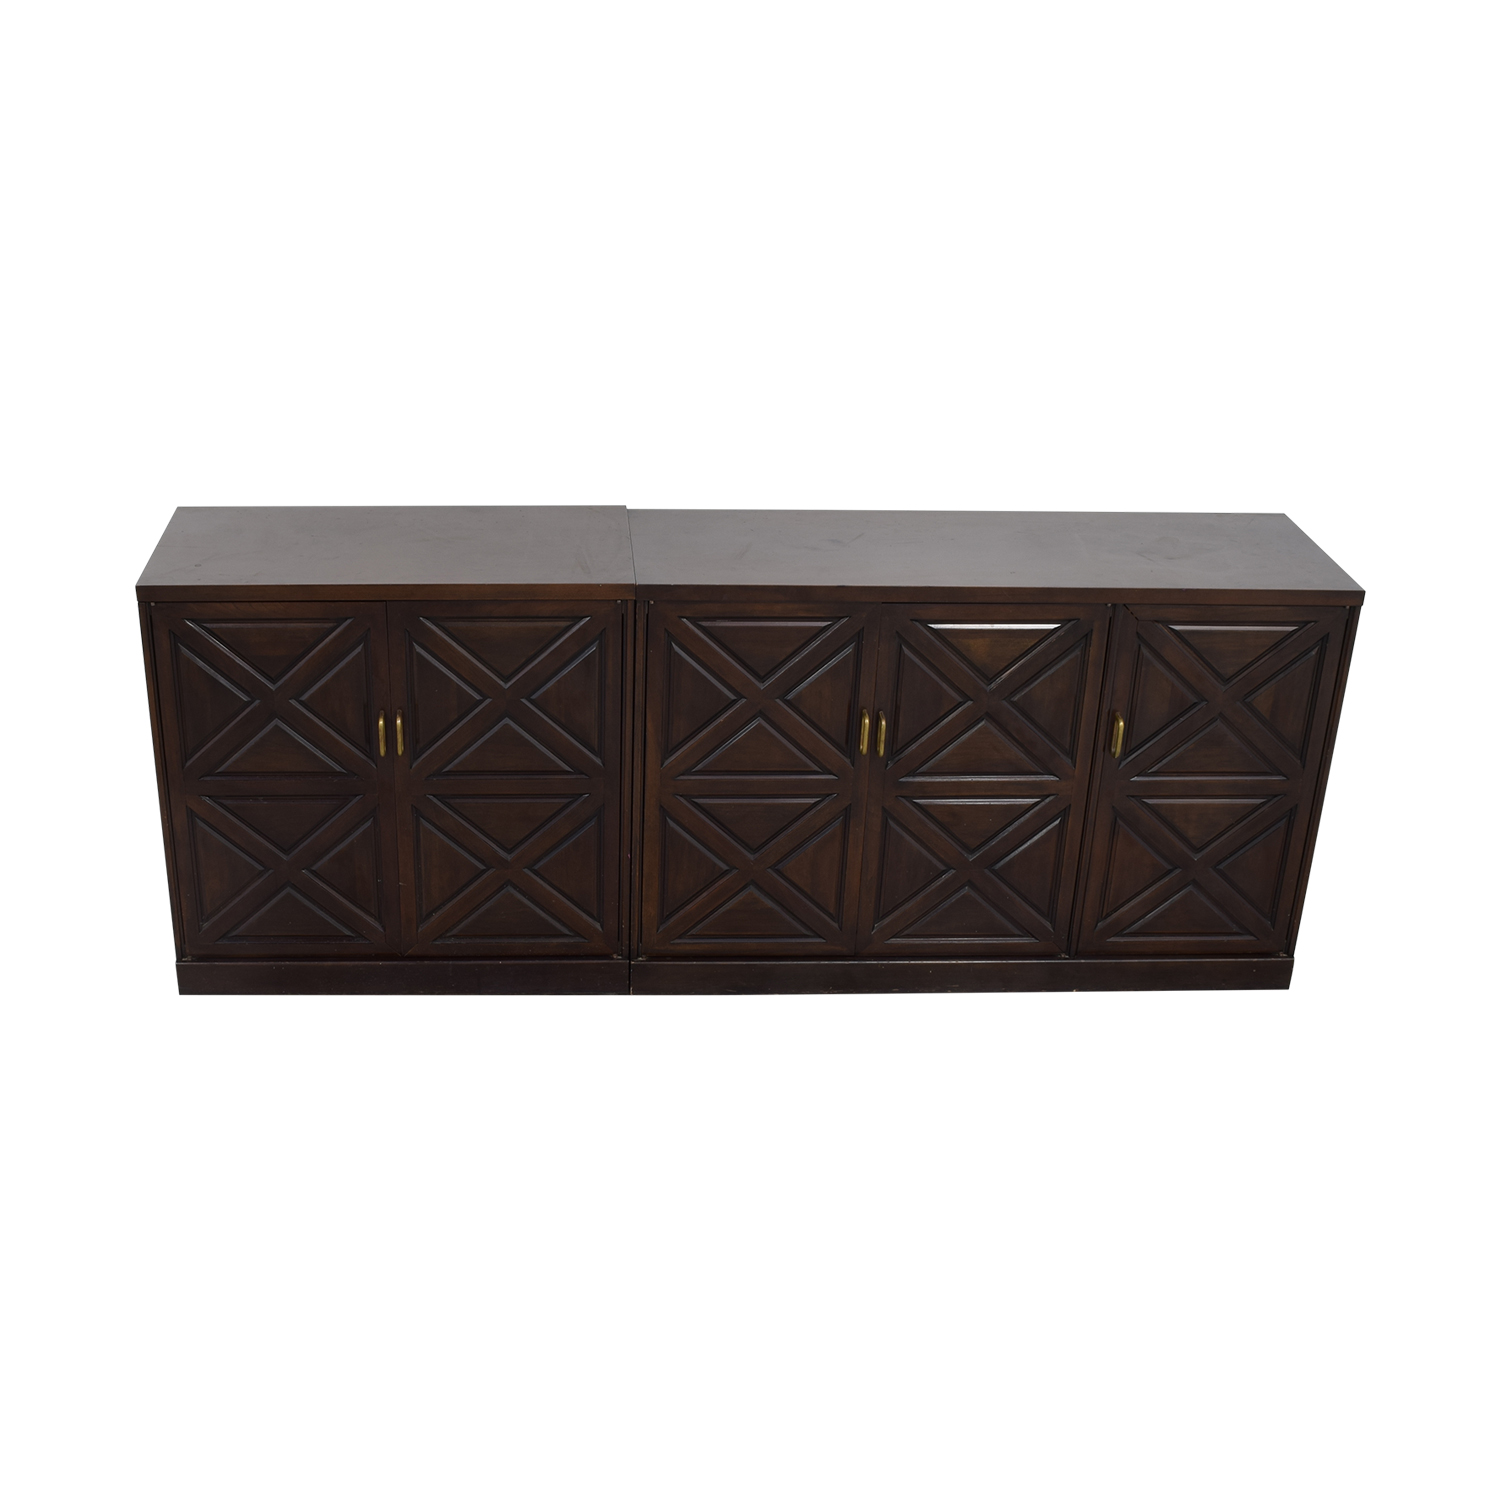 shop Mahogany Sideboard with Drawers and Shelves Storage